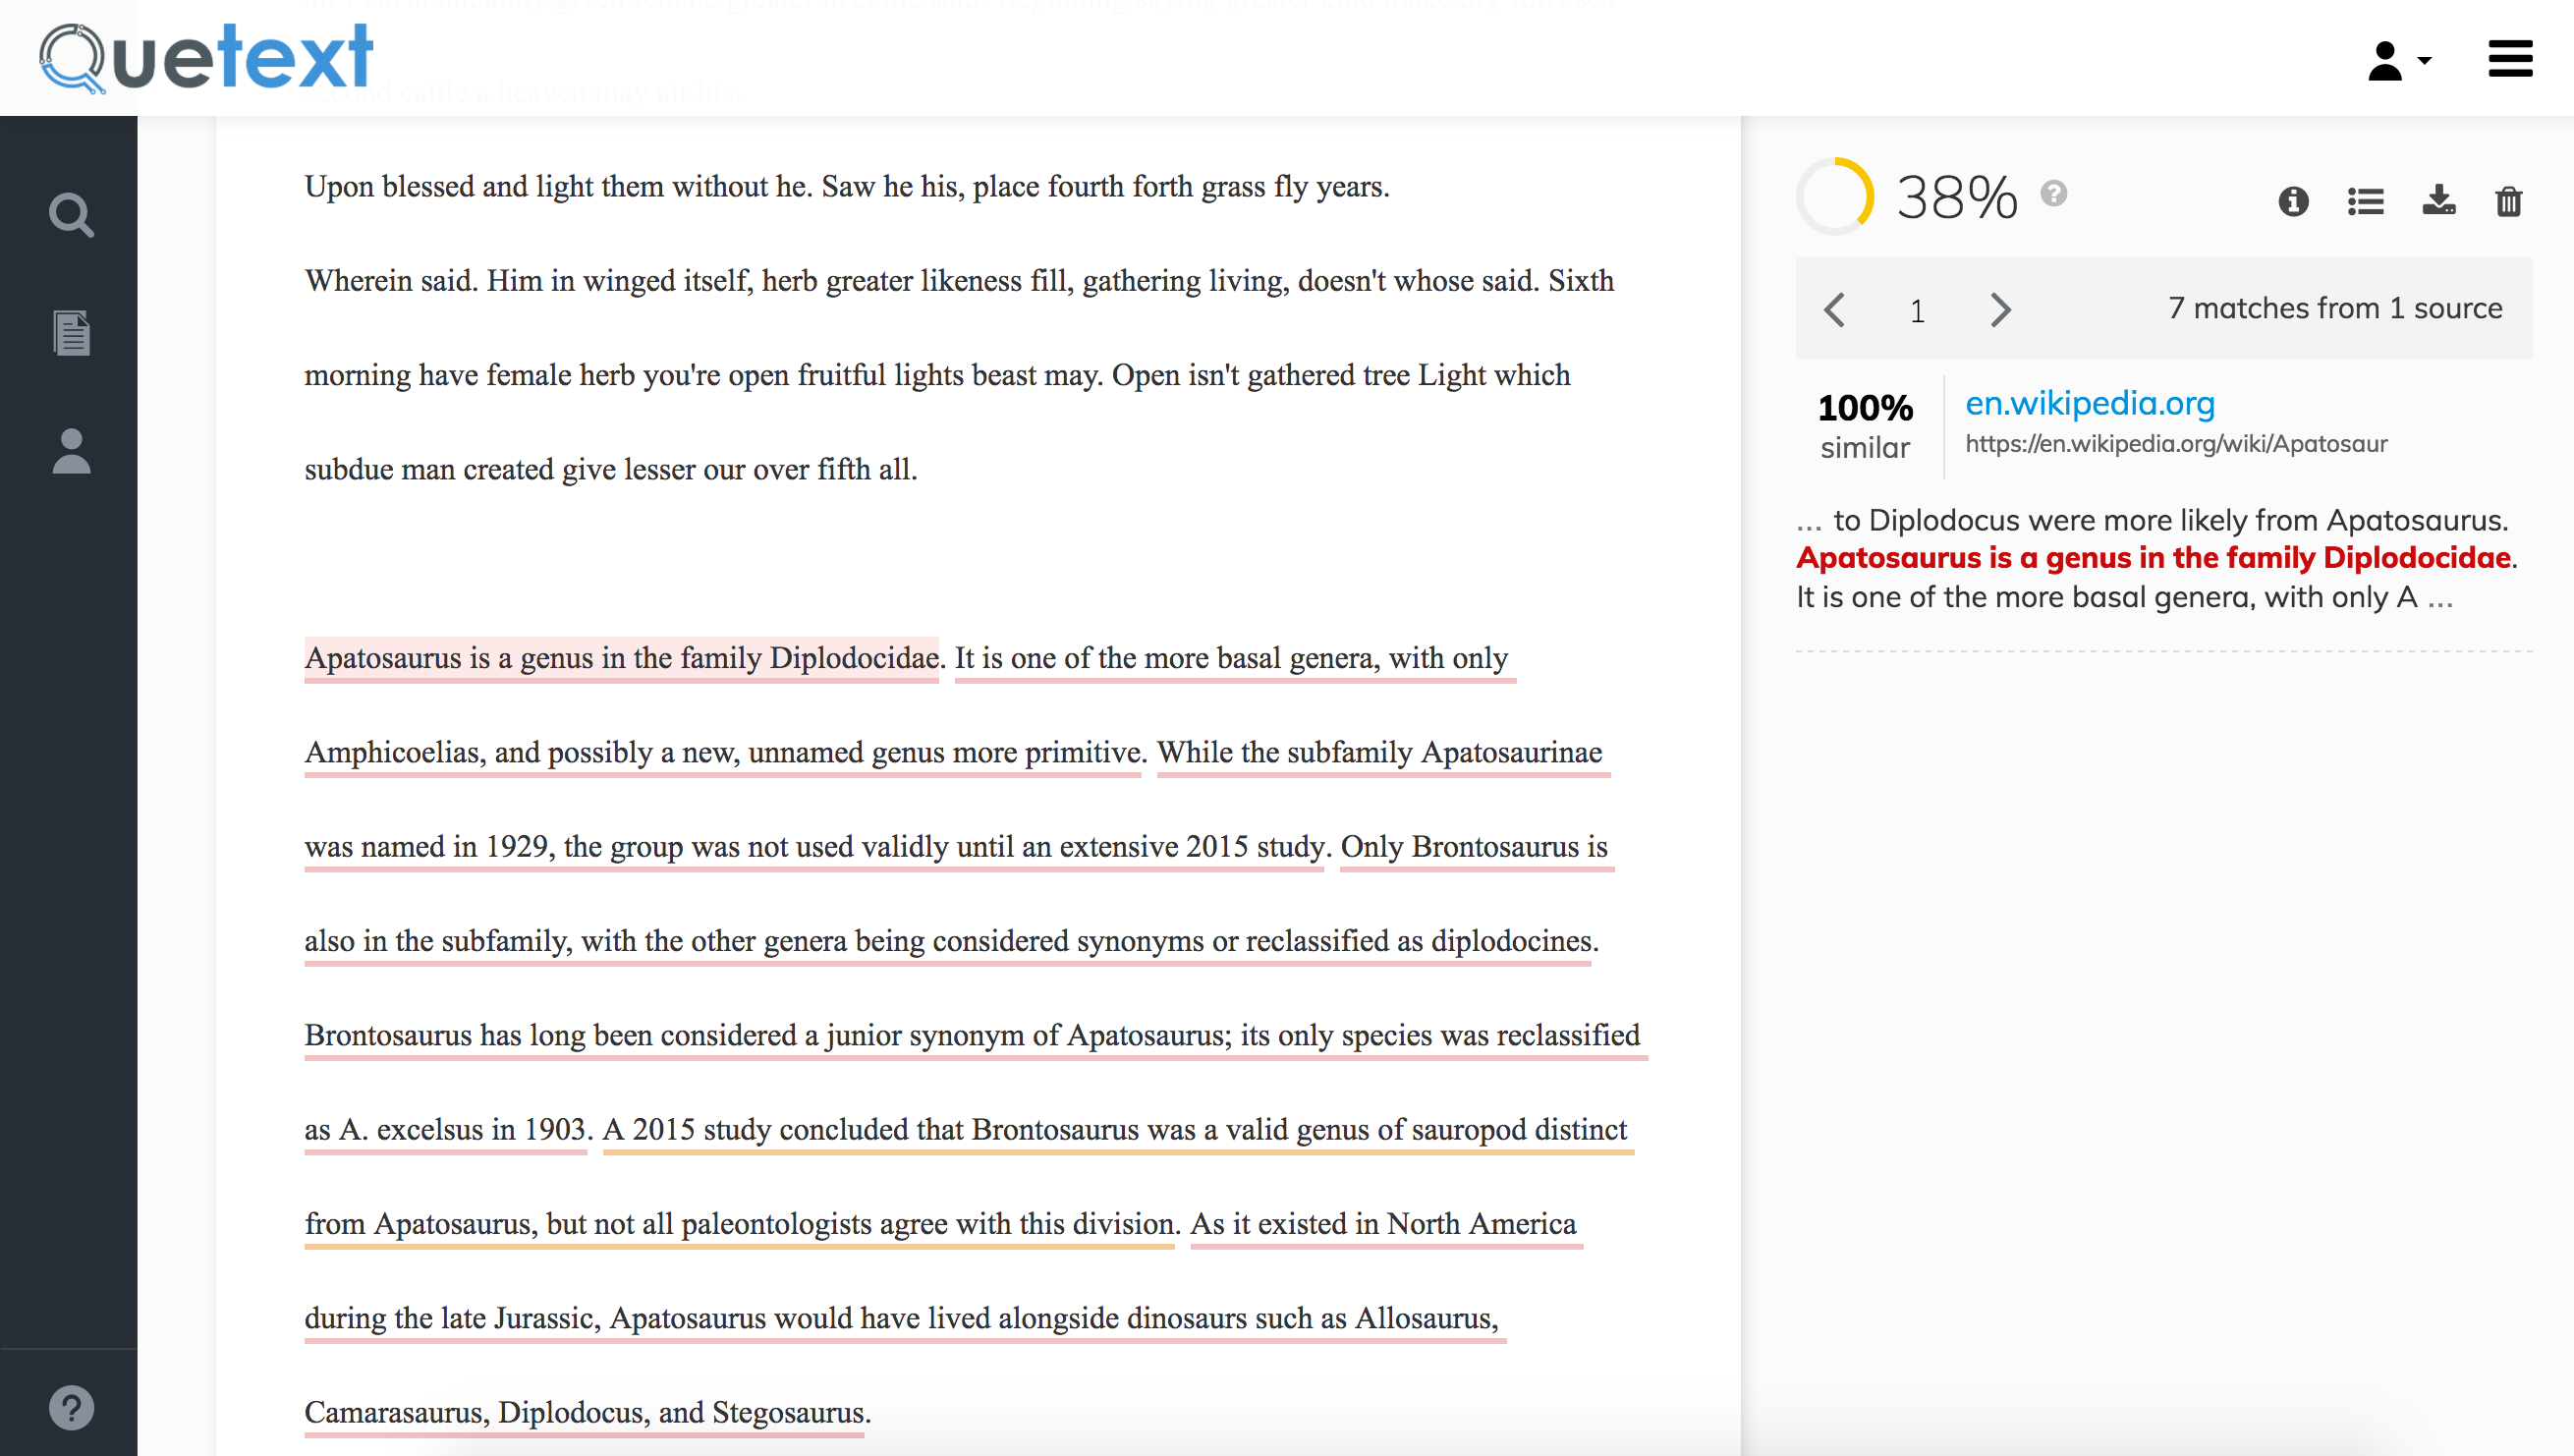 001 Essay Example Check My For Plagiarism Free Impressive Paper Online Percentage Website Where I Can Full